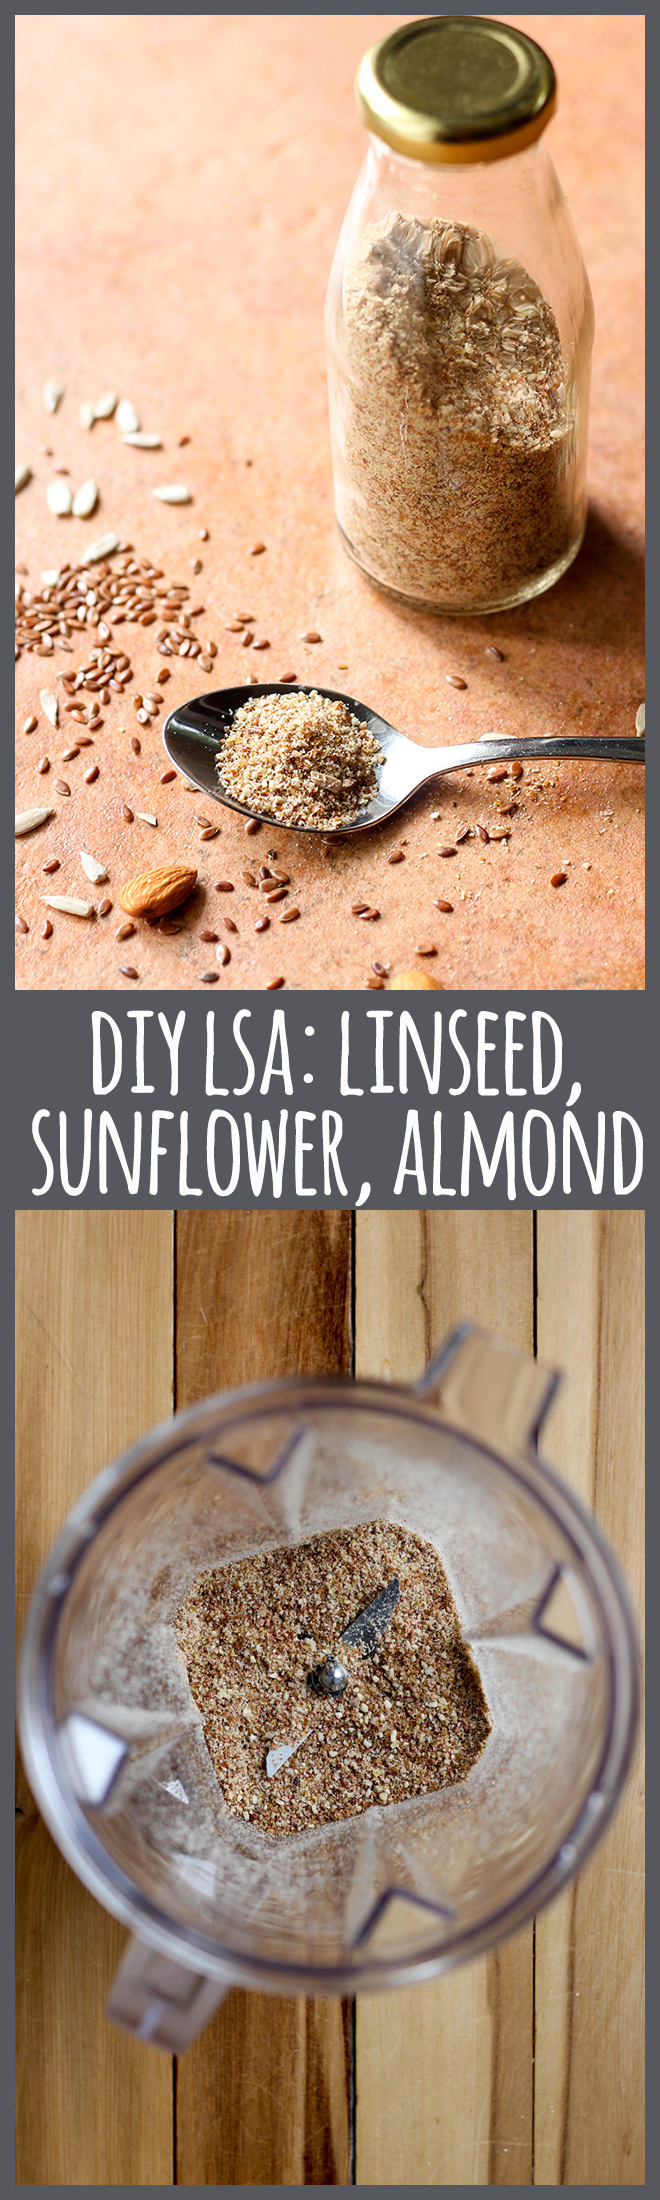 DIY LSA: Ground linseed (flaxseed), sunflower seeds and almonds. A great source of omega fatty acids, and incredibly easy to make at home.